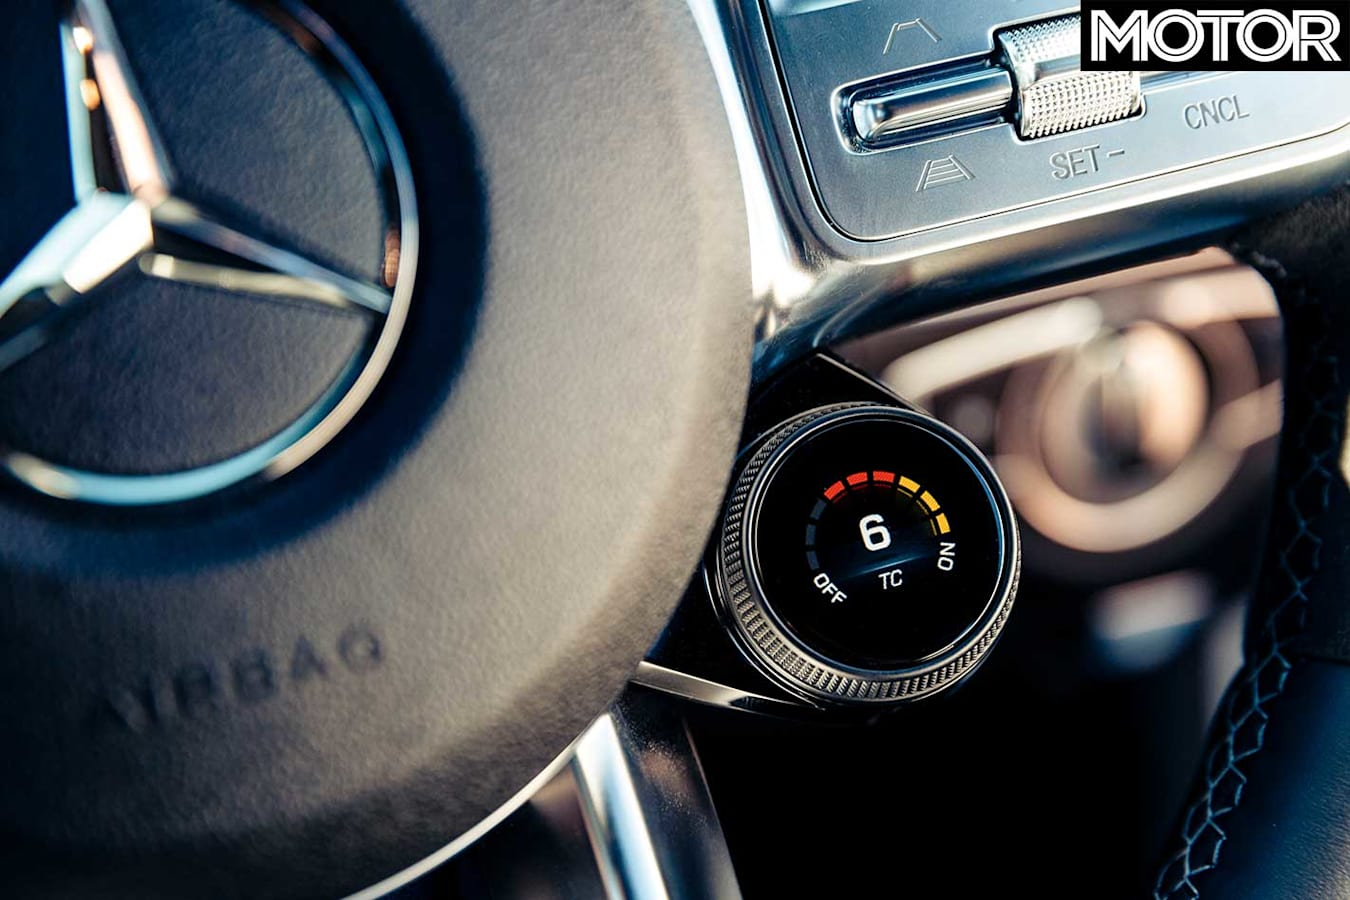 2019 Mercedes AMG C 63 S Traction Control Dial Jpg